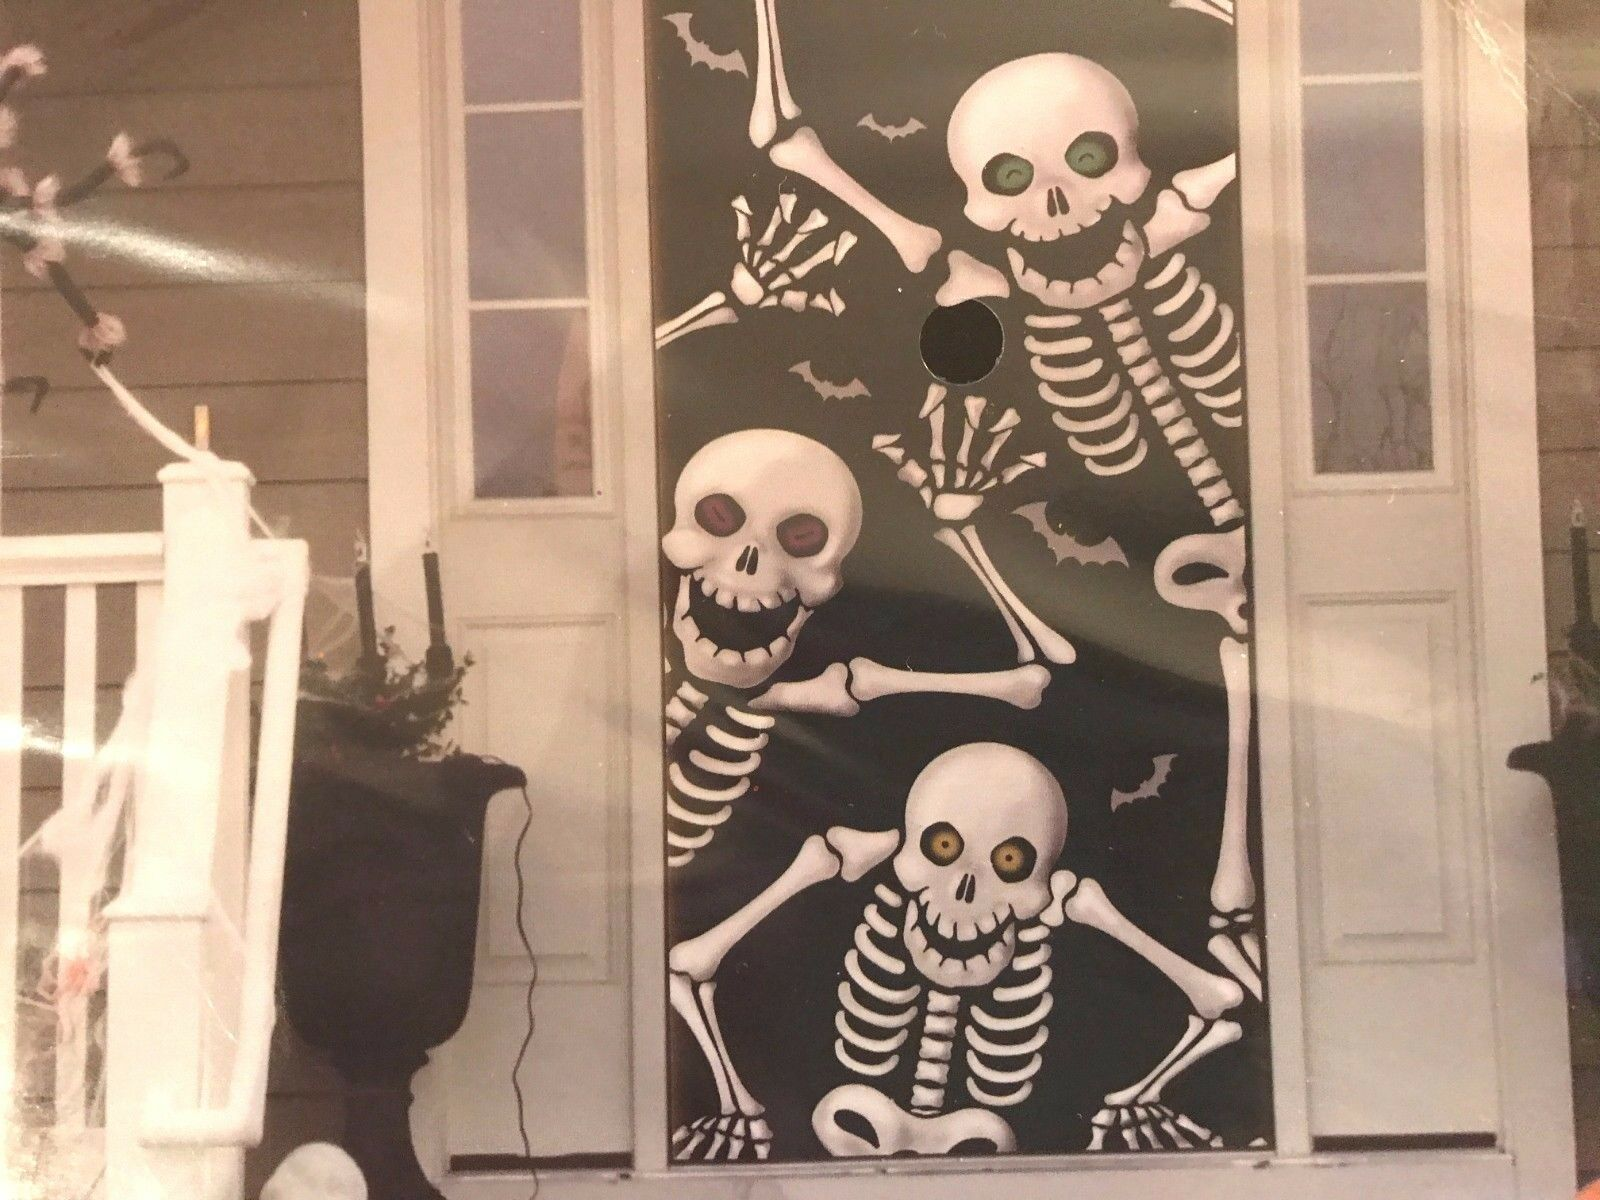 Picture 1 of 4 ... & Halloween Skeleton Door Cover Wall Decoration by Nknown | eBay pezcame.com